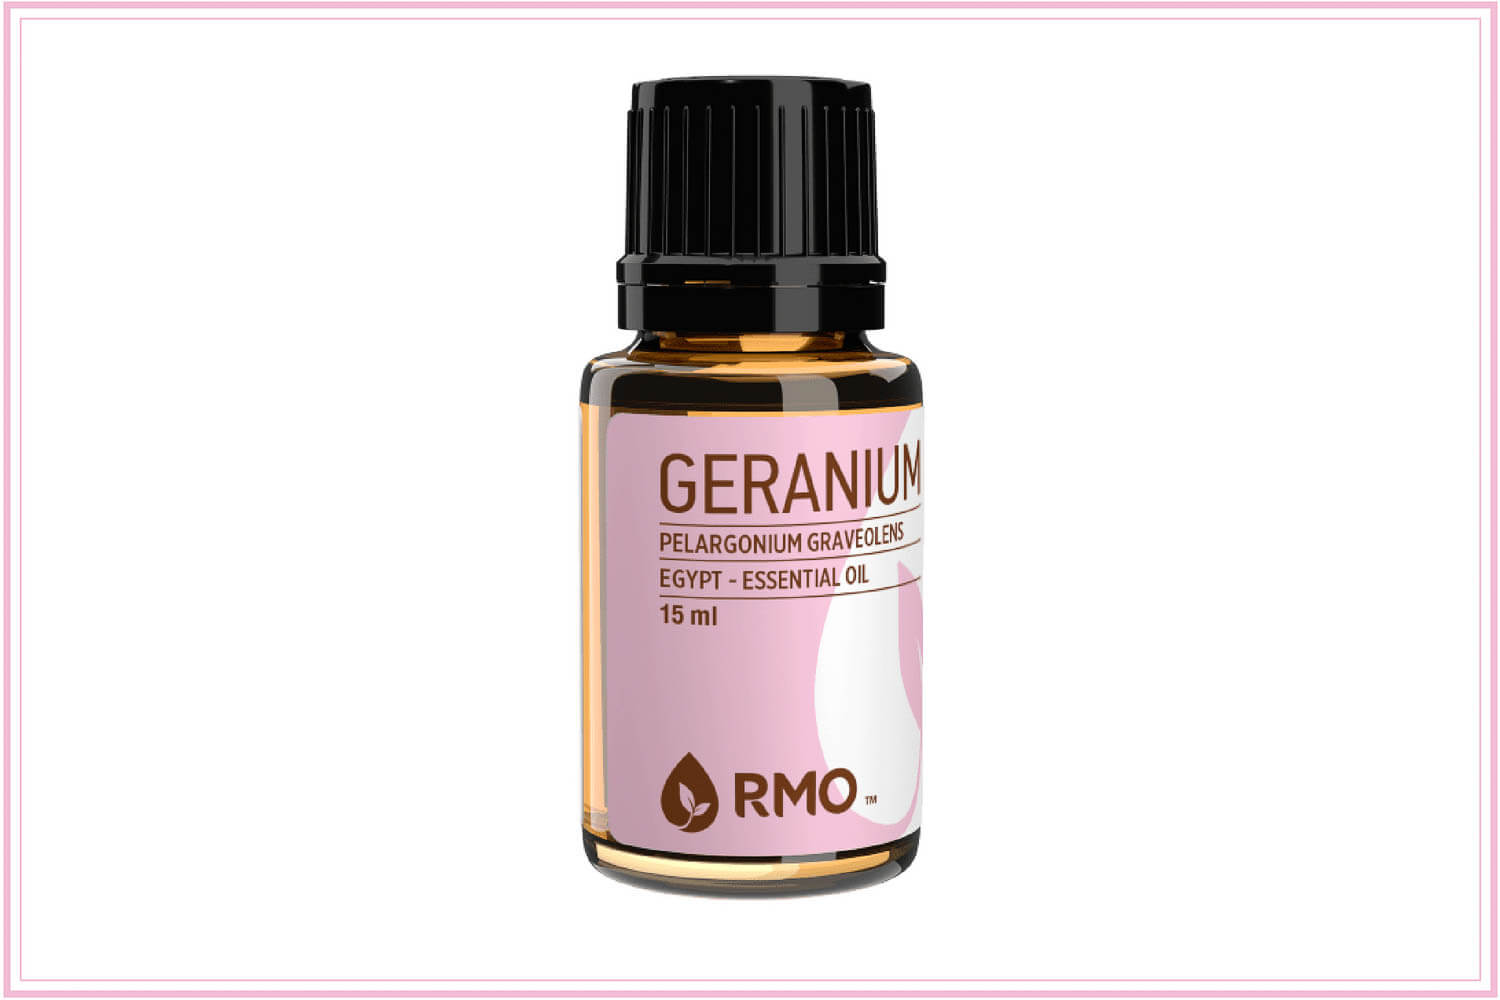 geranium oil for fever blisters